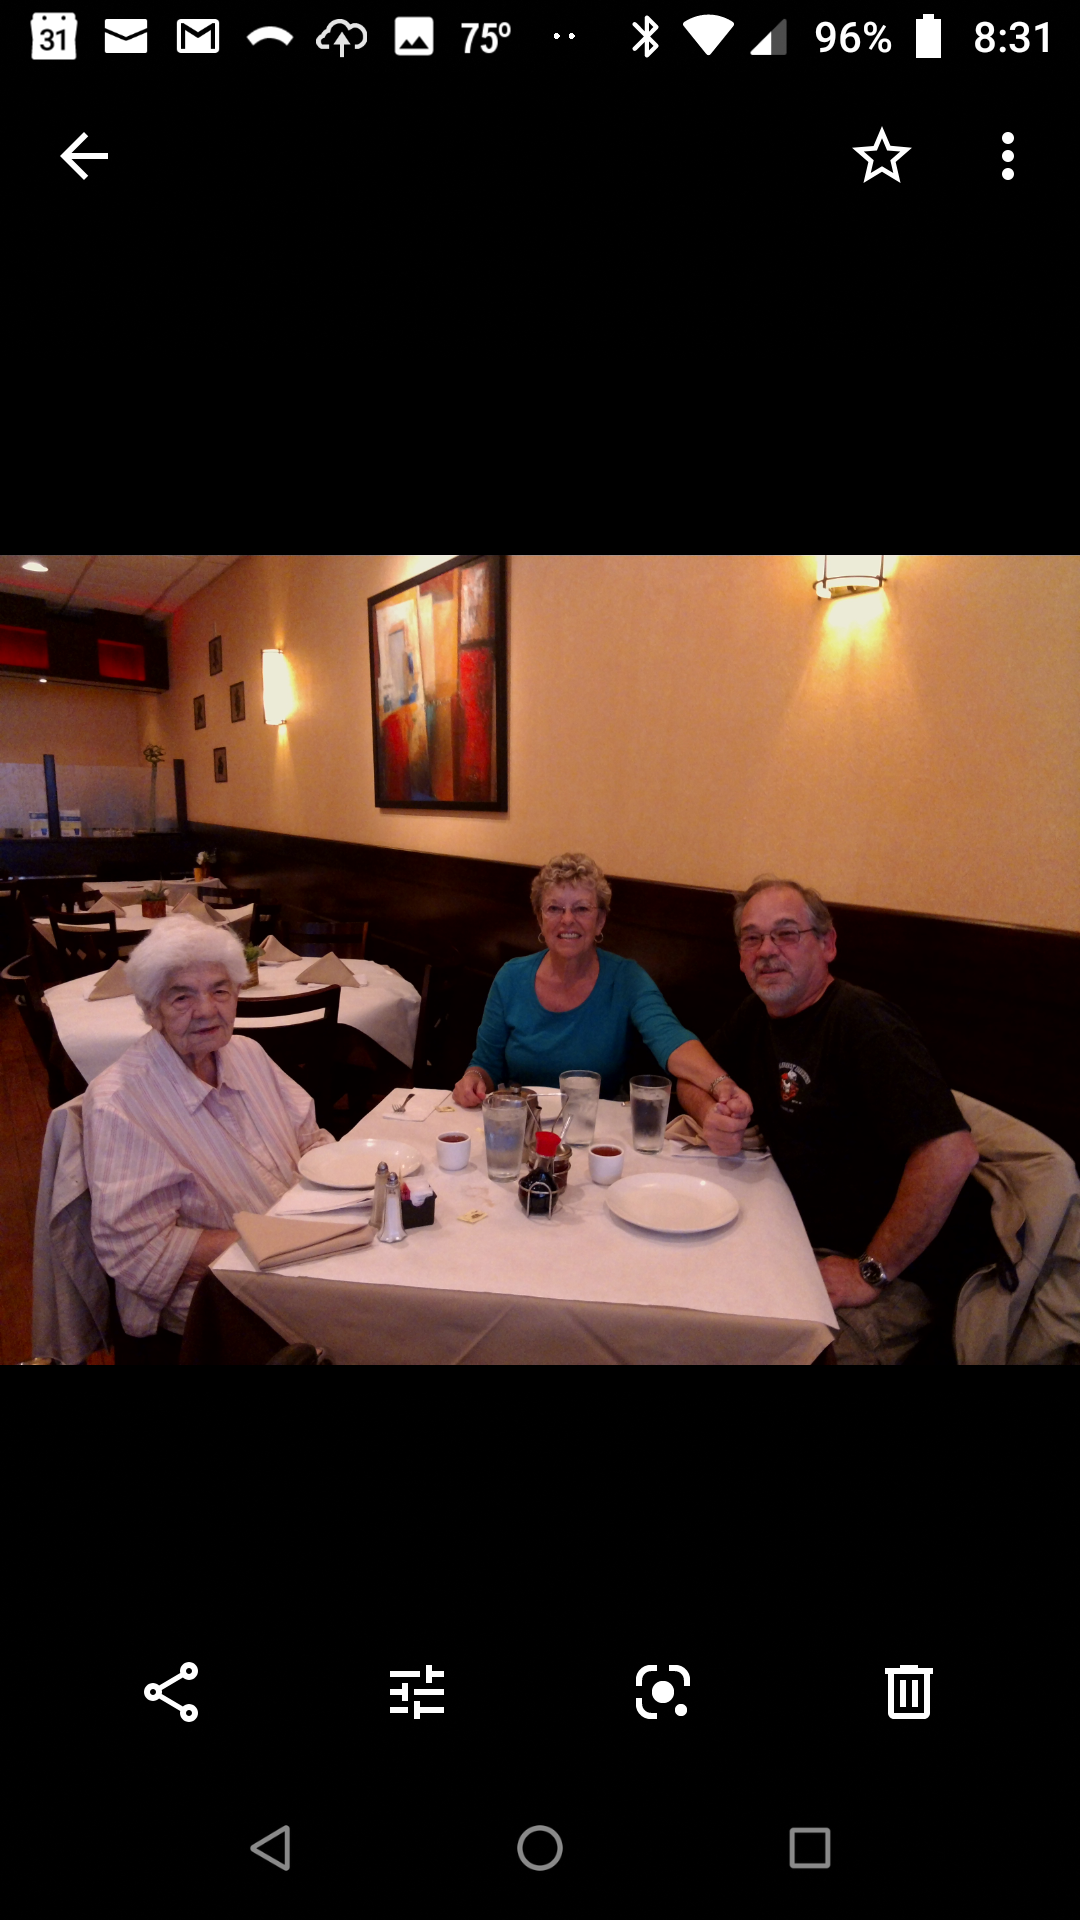 Patrick, Elsie and Mom in Chicago's Chinatown